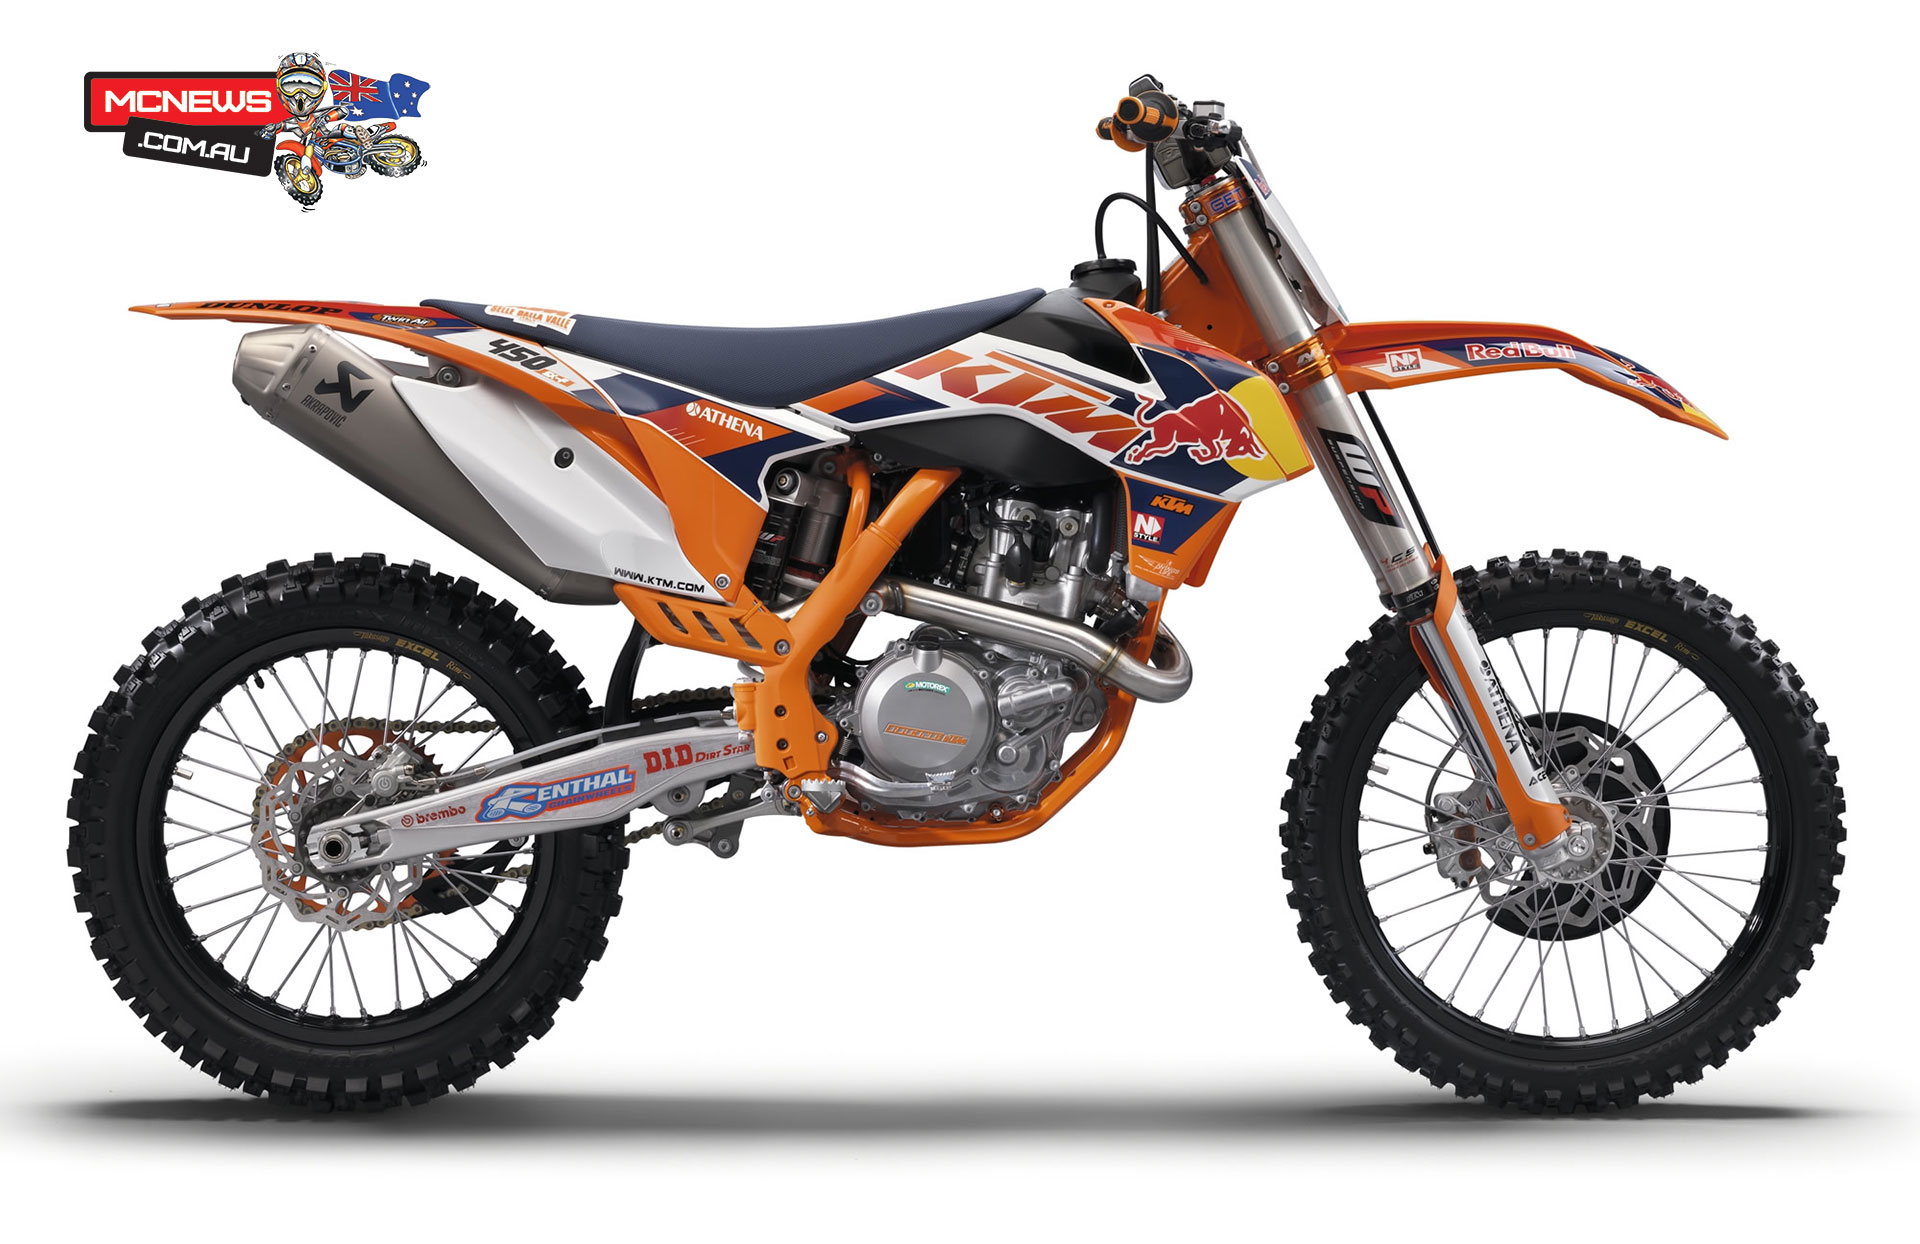 Comes with everything but a serviette to mop up the drool... KTM Dealers are currently taking orders for this homologation special, the 450SX-F Factory Edition, as ridden by Ryan Dungey and Ken Roczen. They are expected to go fast, so get your order in.